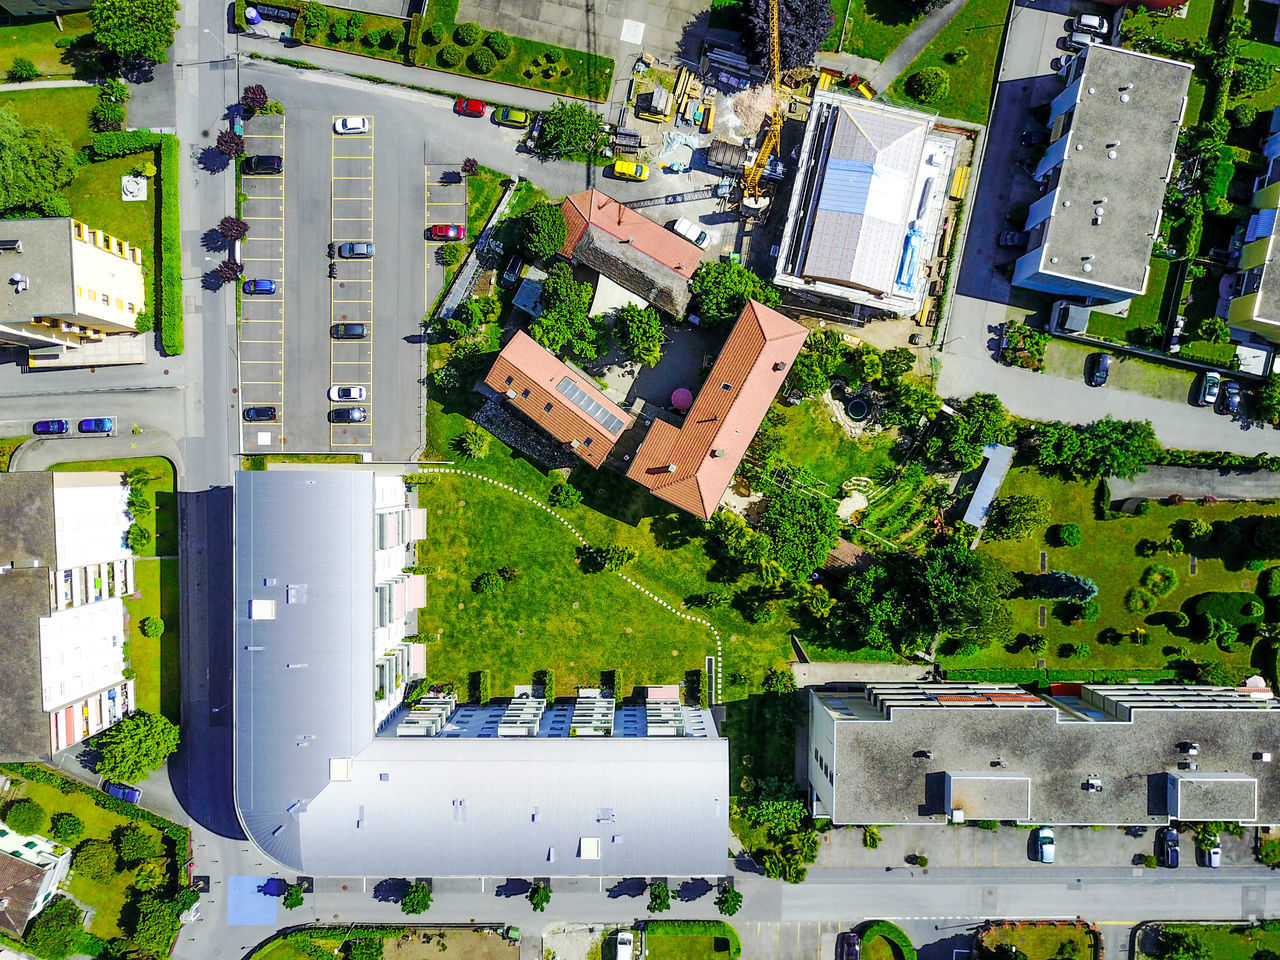 Architecture Building Exterior Built Structure City Day Drone Moments Drone Photography Dronephotography EyeEm Best Shots EyeEm Gallery Folowforfollow High Angle View Outdoors Residential Building Roof